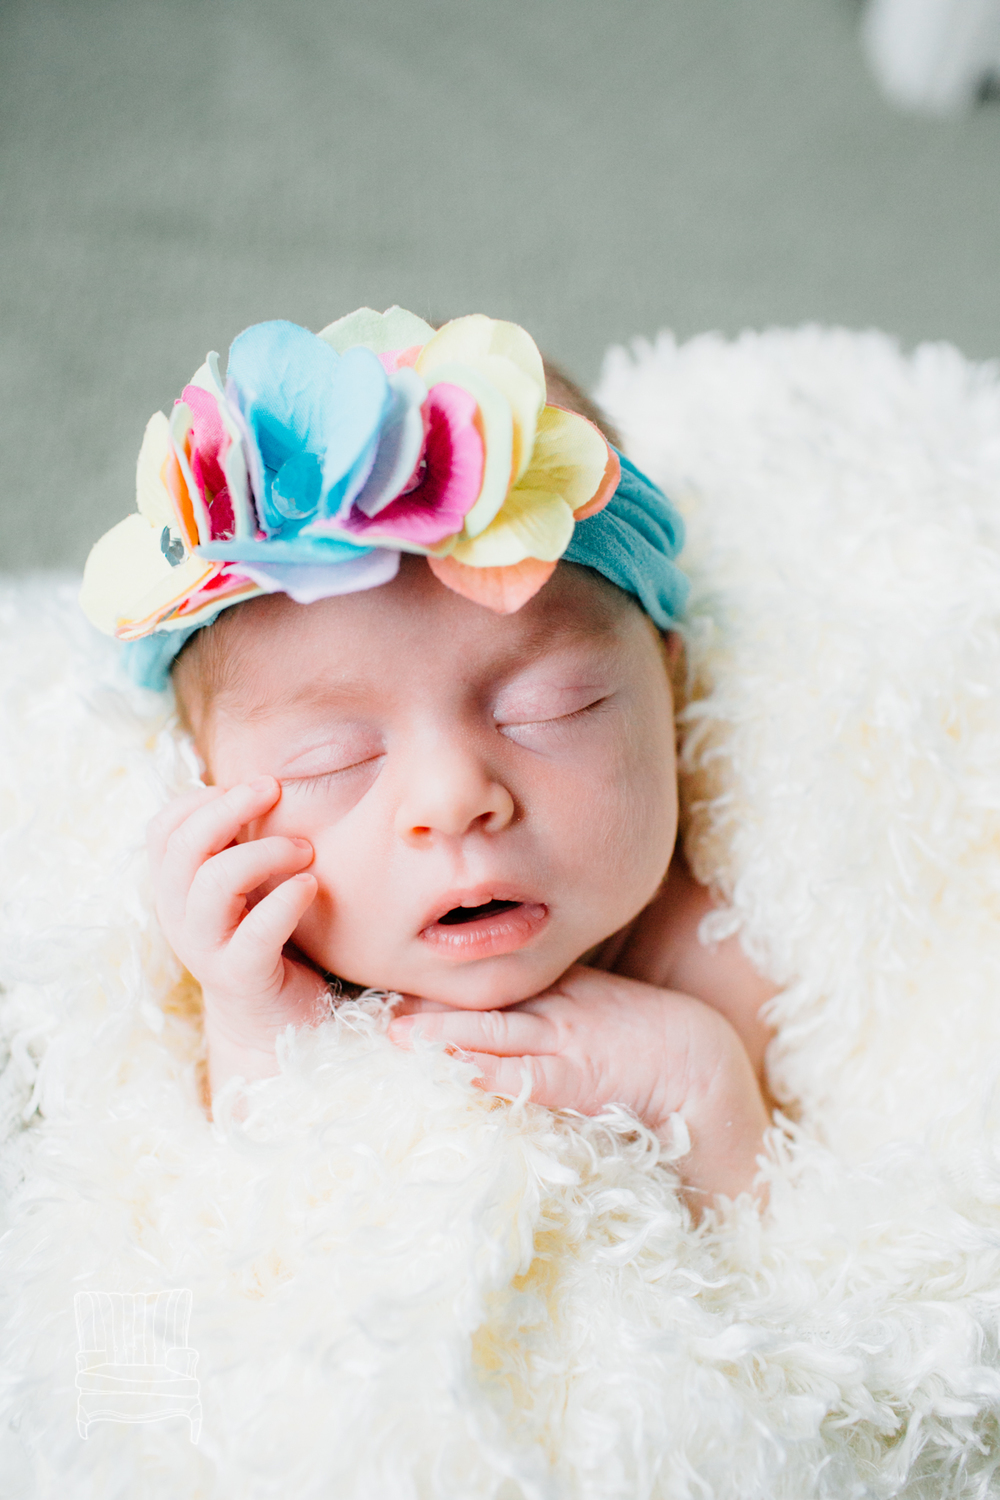 bellingham-newborn-photographer-photo-lifestyle-session-harper-41.jpg